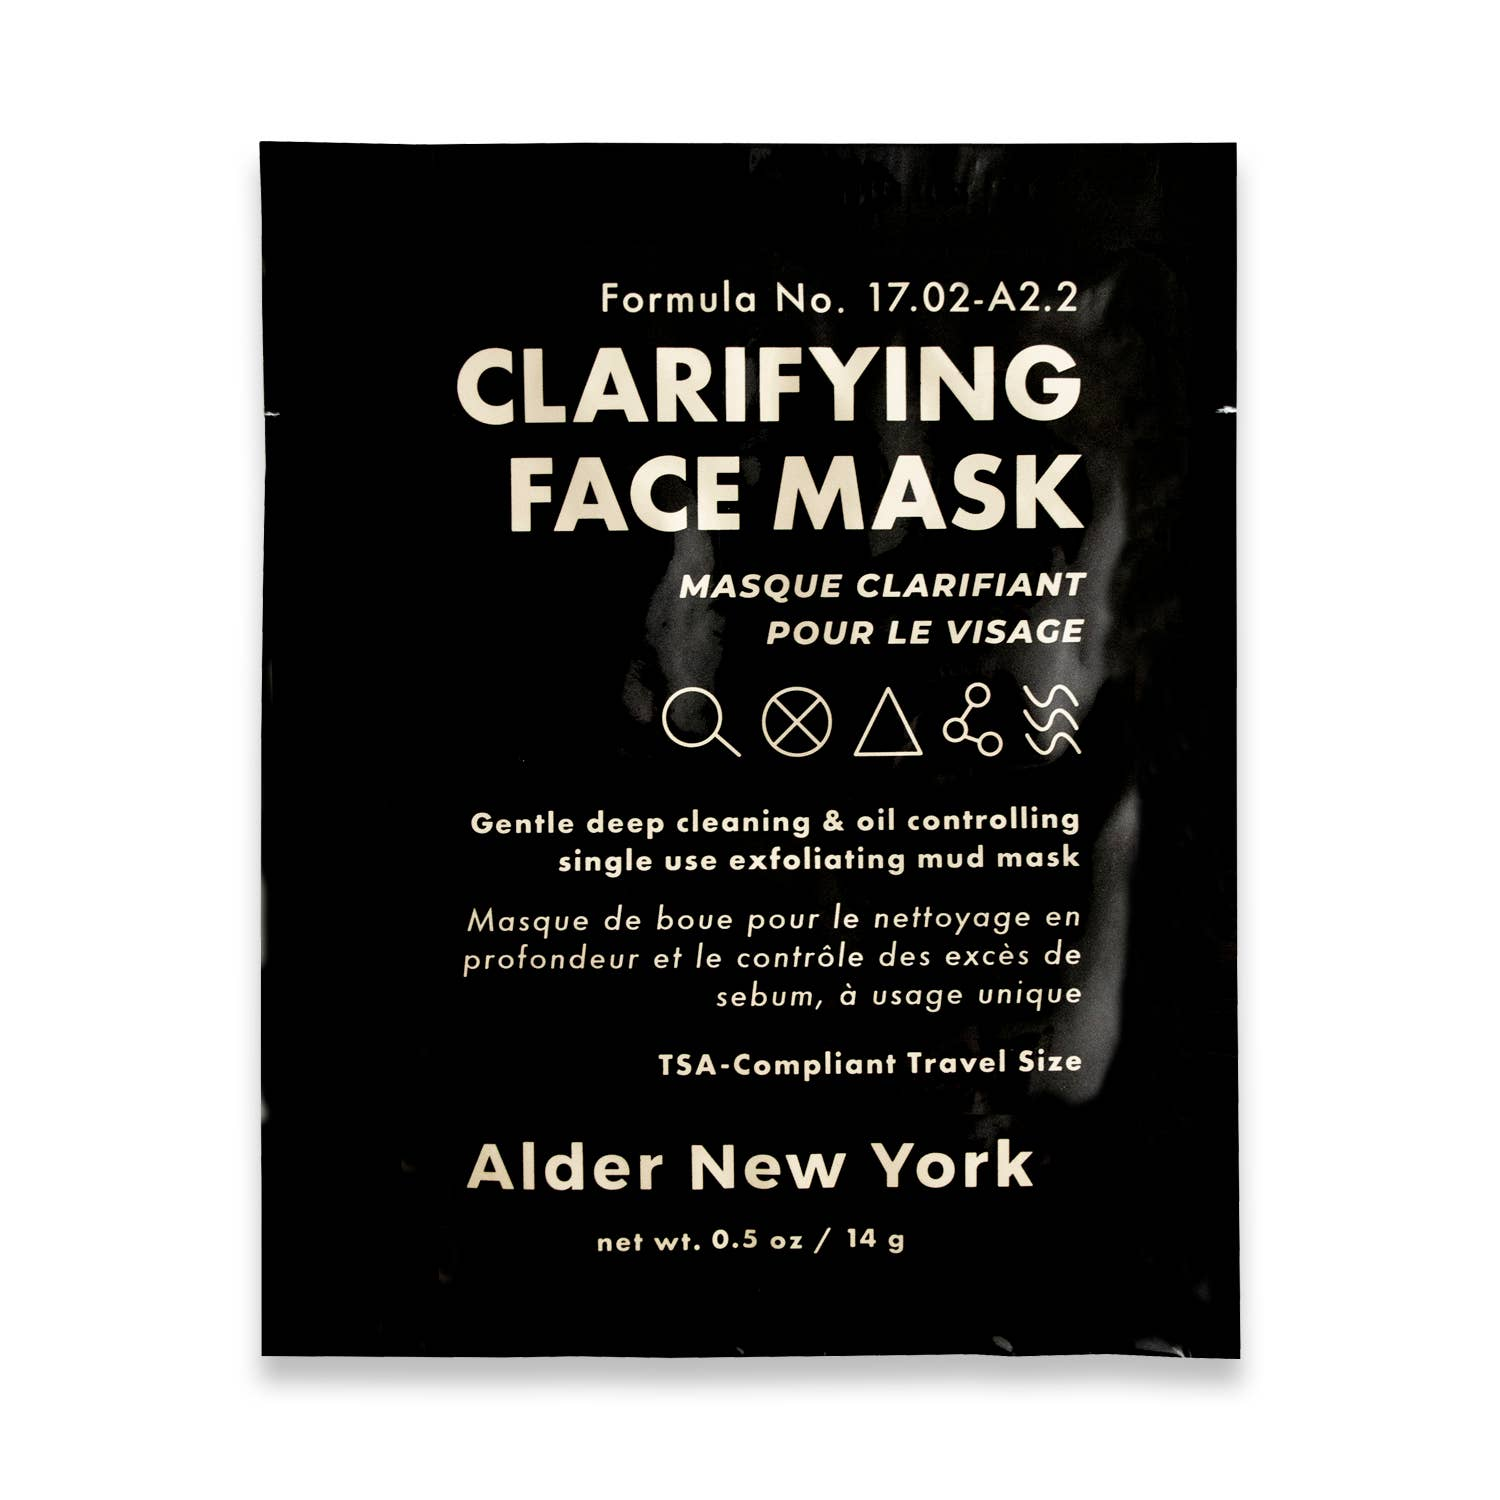 Single use clarifying face mask by Alder new york package